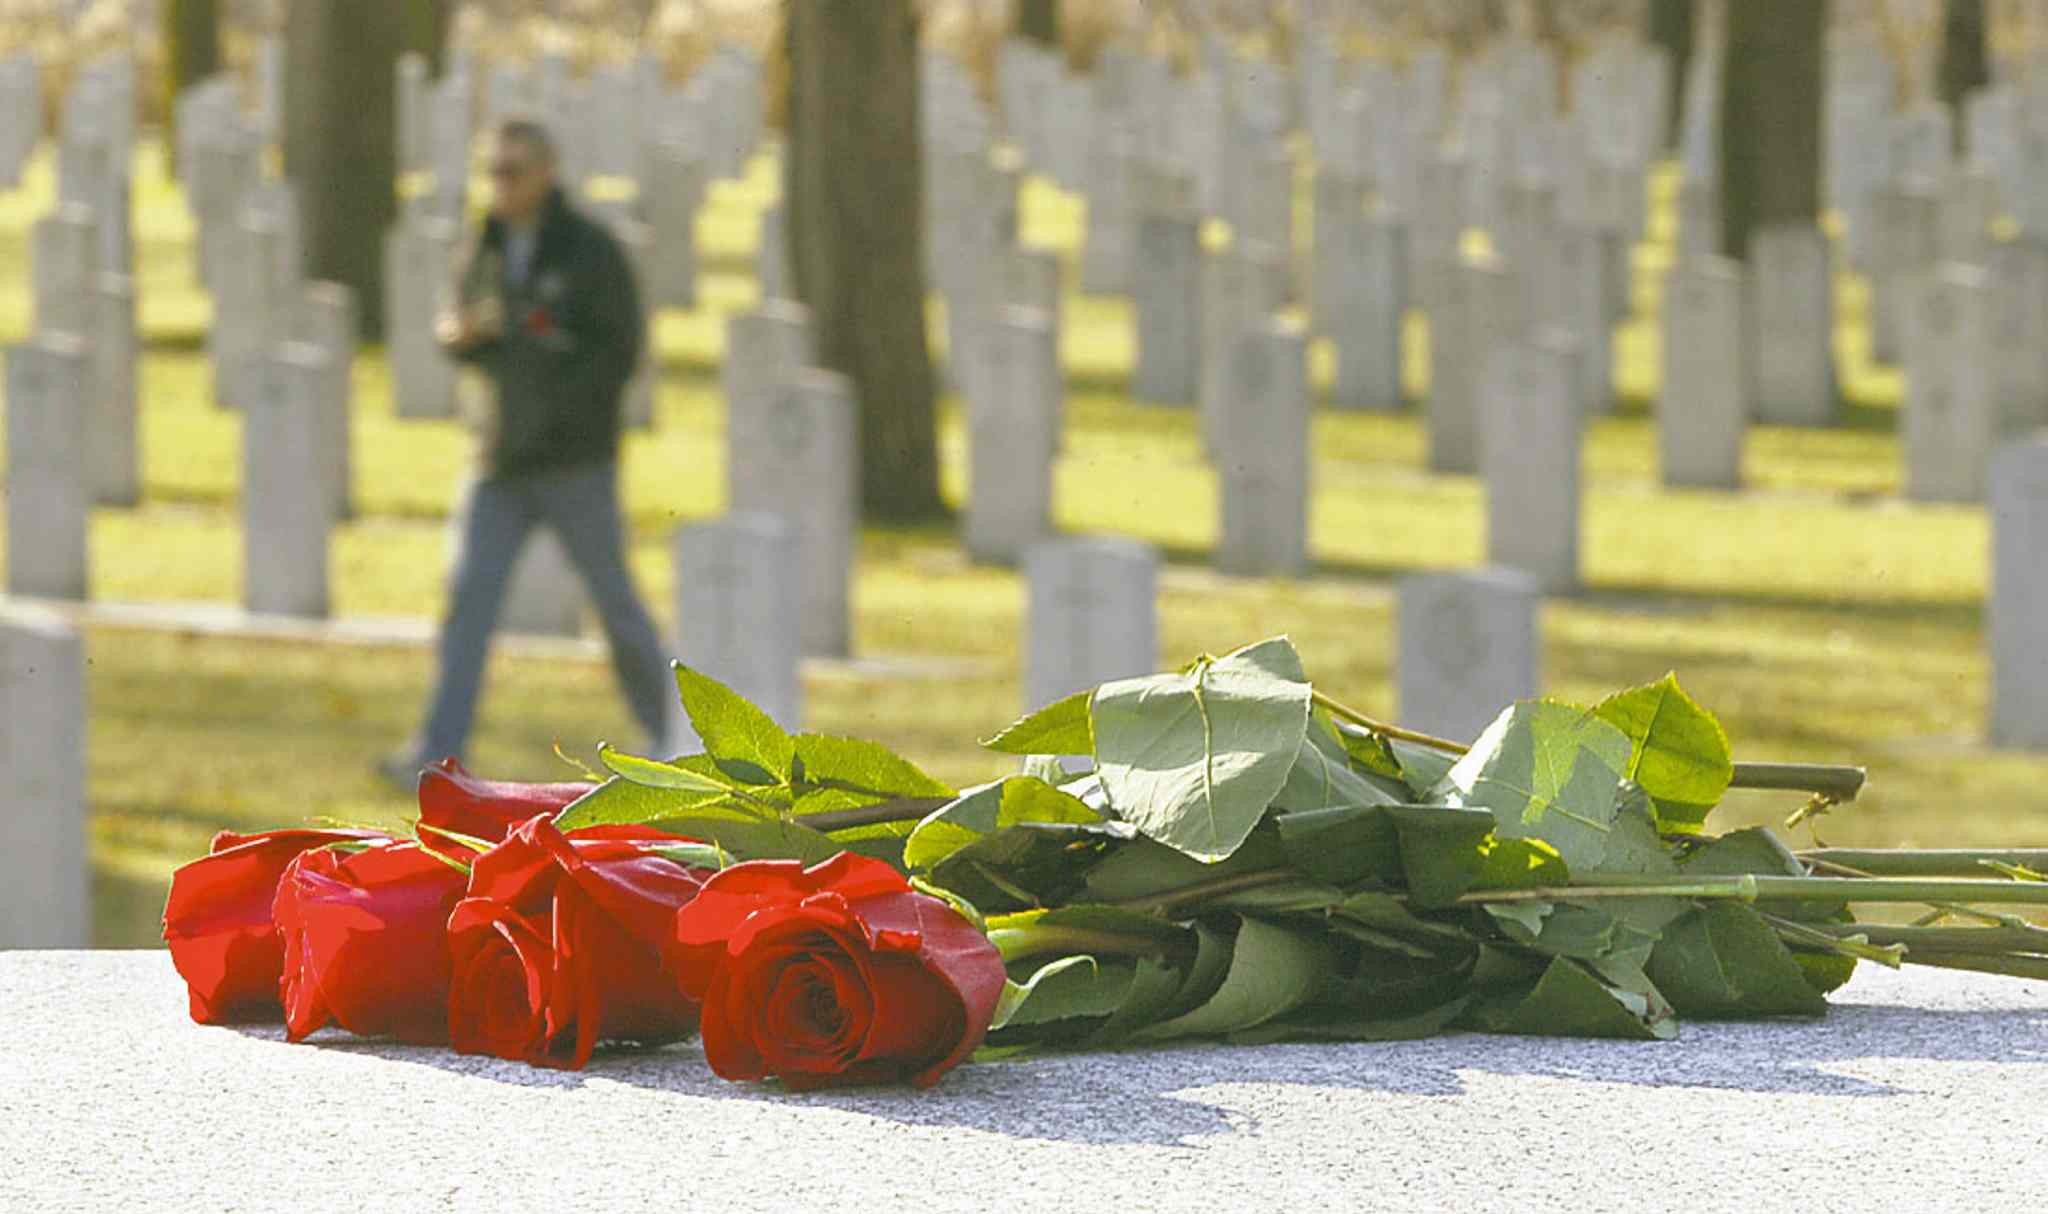 Winnipeggers who want to attend a Remembrance Day ceremony can attend the main ceremony at the RBC Convention Centre Winnipeg or any of the smaller events throughout the city.